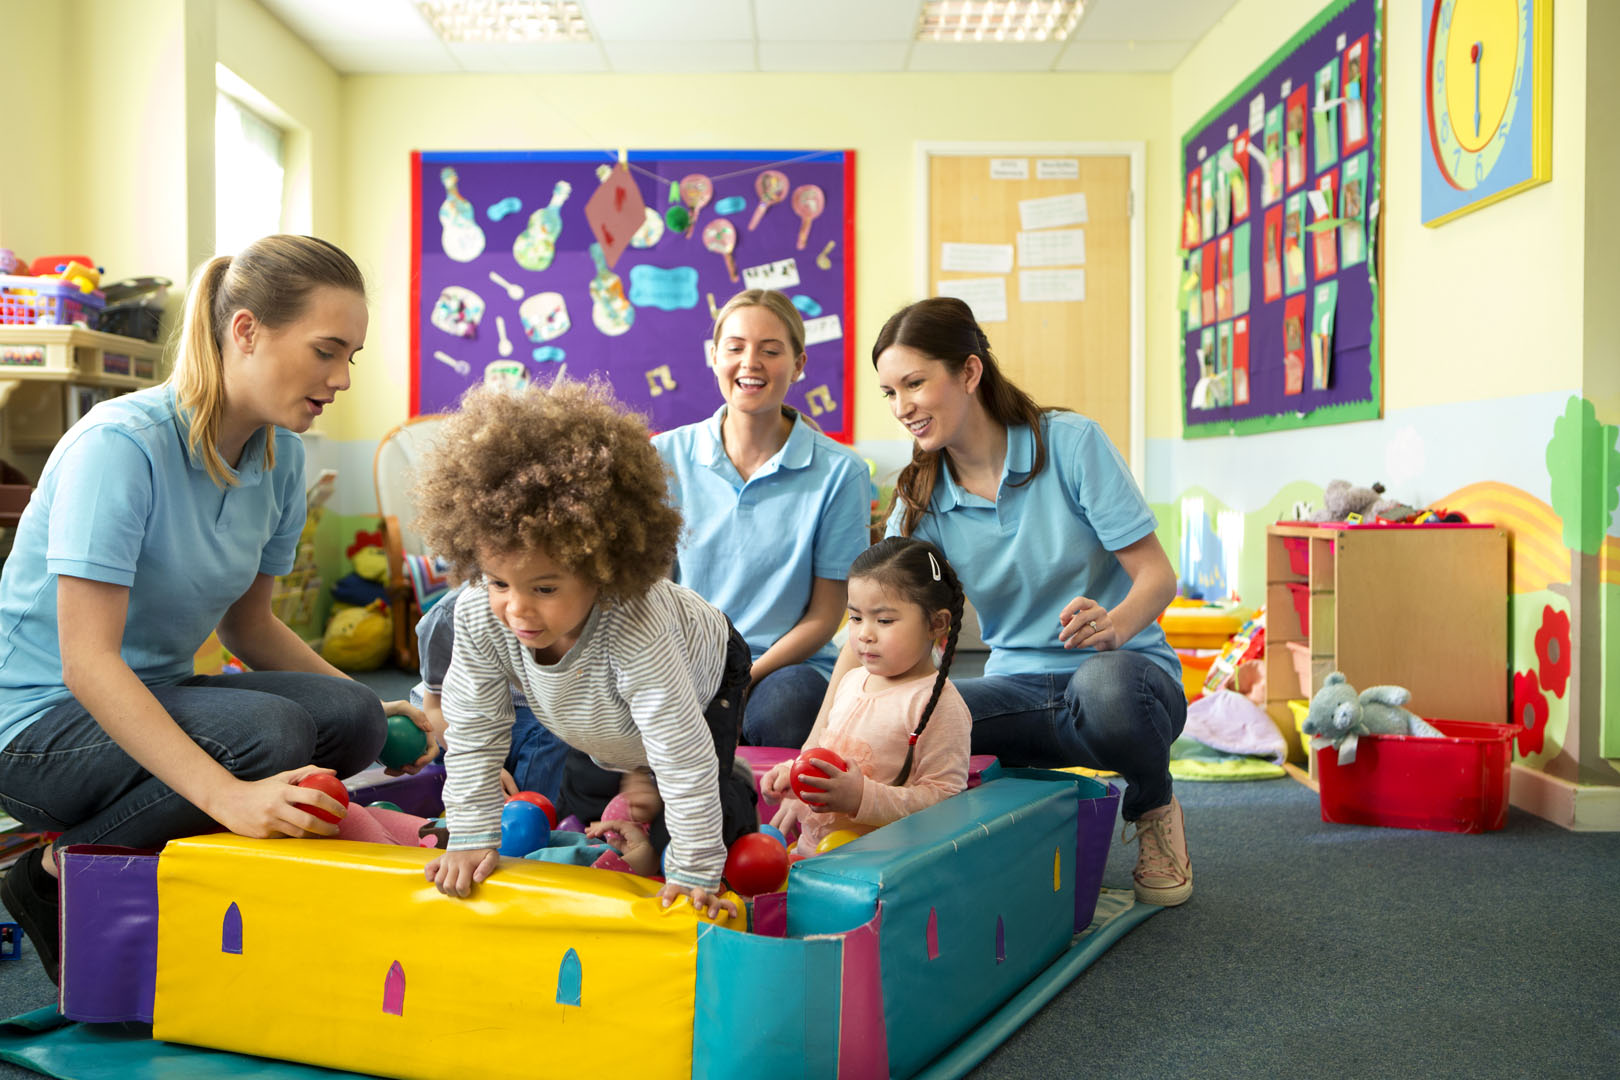 A horizontal image of a group of children in a ball pool playing and laughing, behind them sit three nursery teachers in blue polo shirts supervising and smiling. The nursery is a colourful scene of toys and mess.